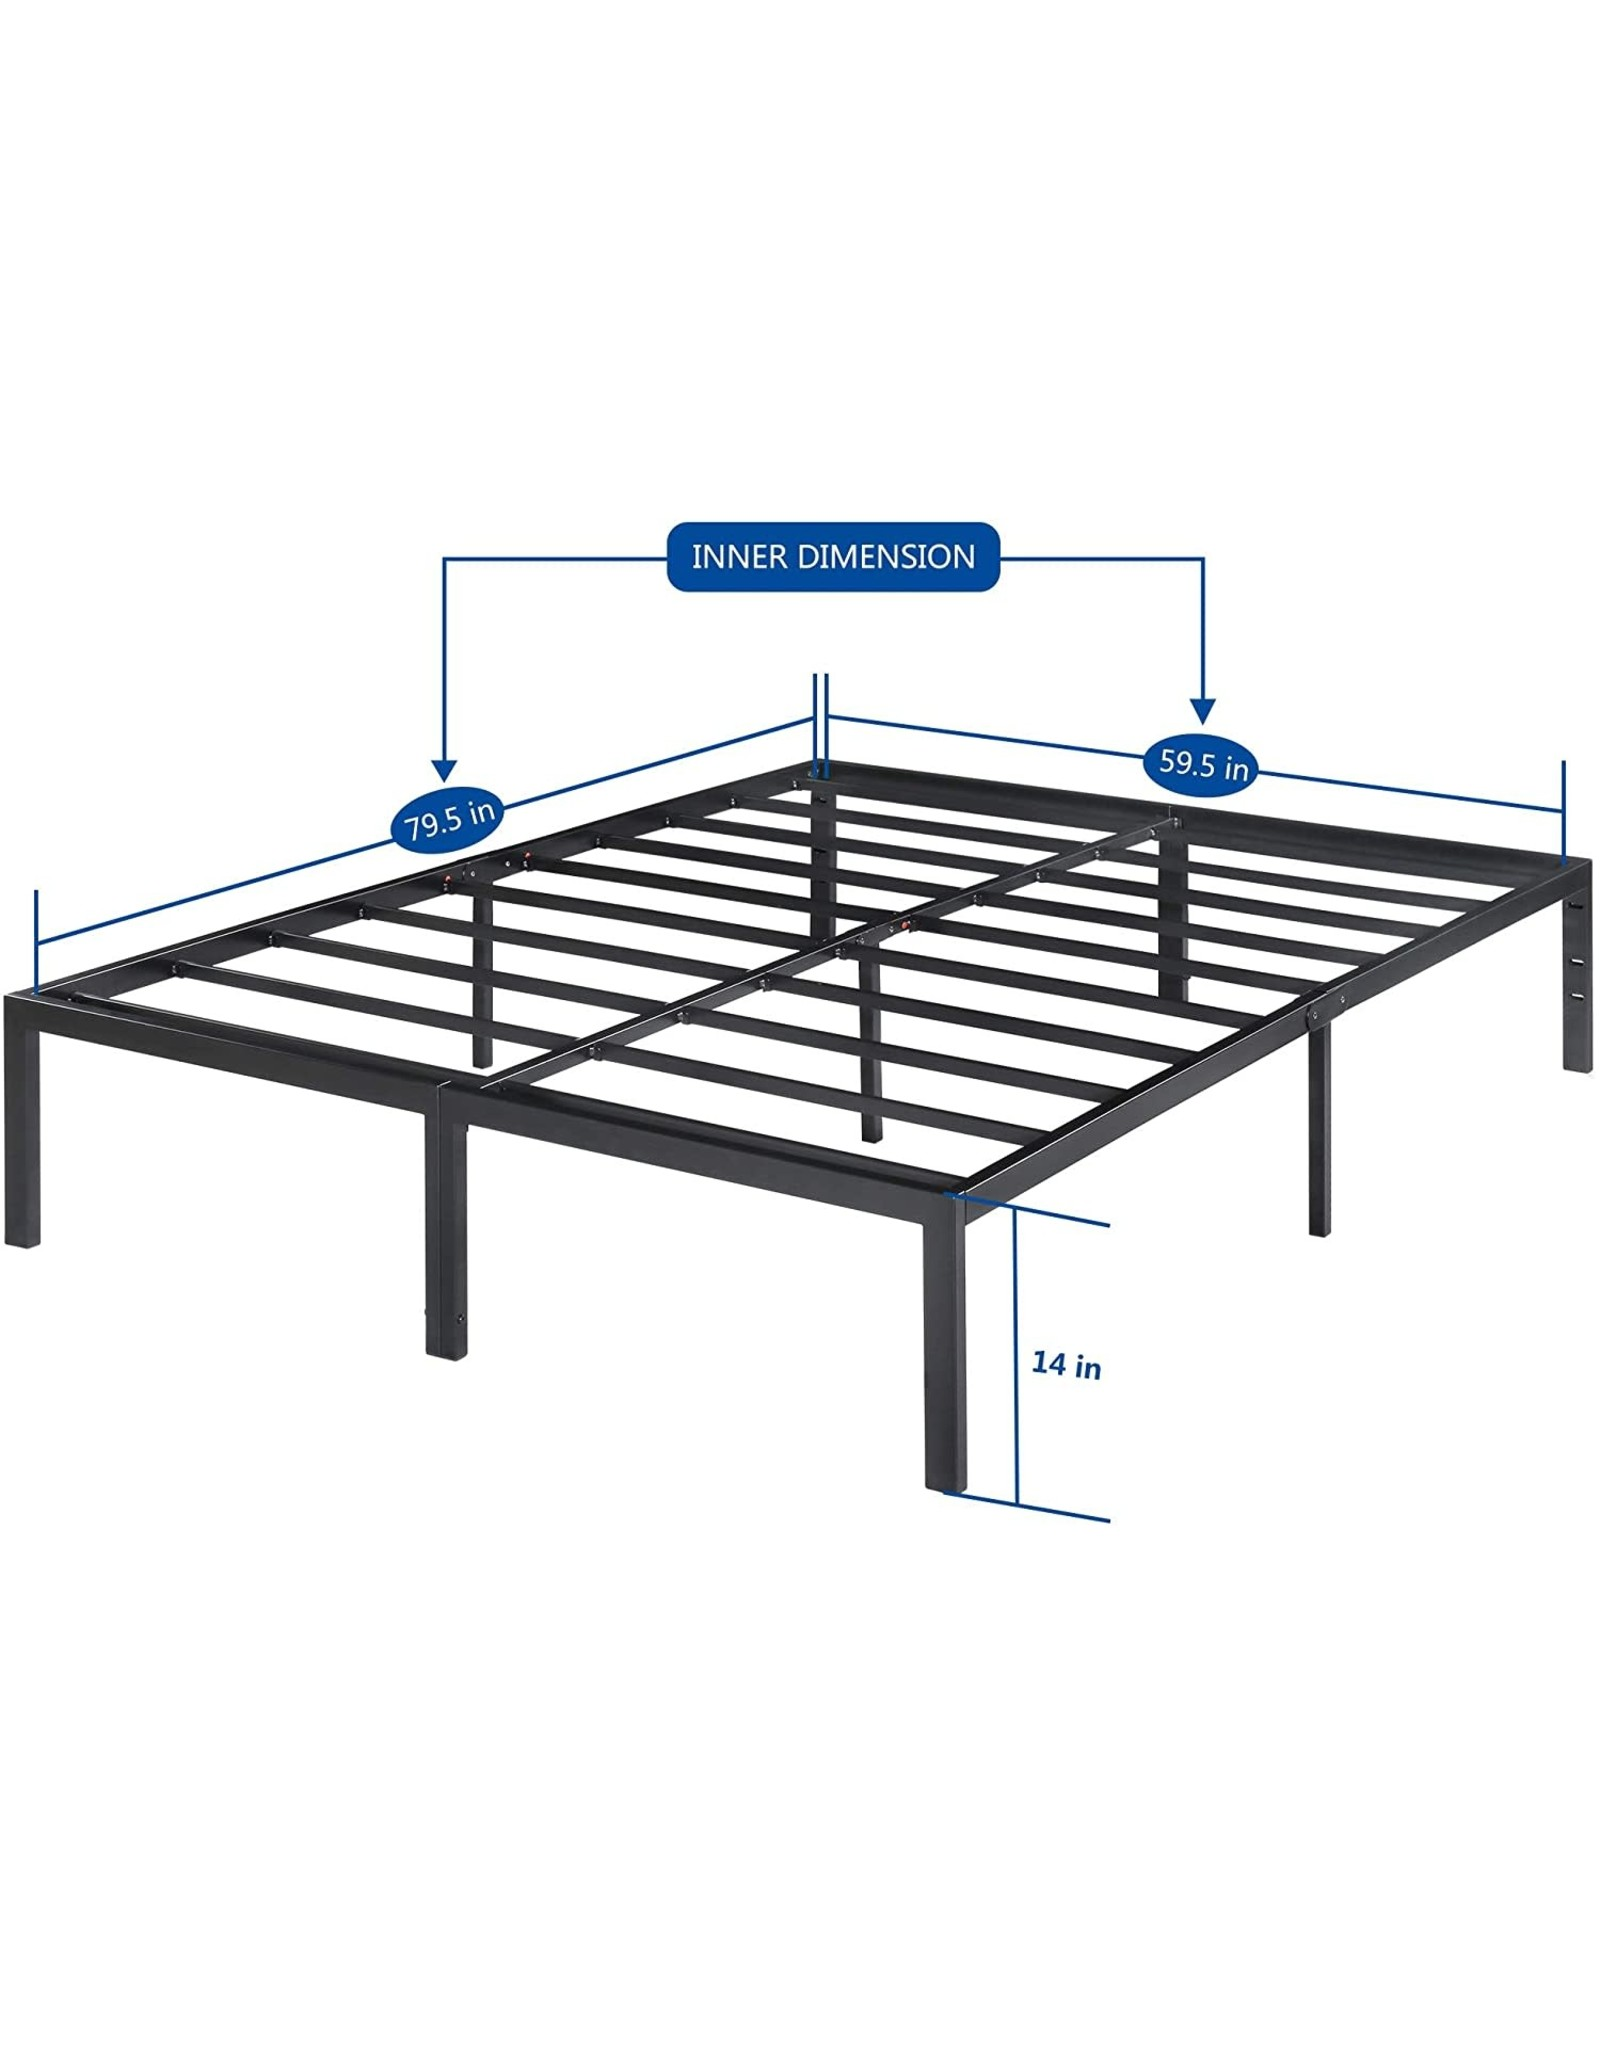 Olee Sleep Olee Sleep 14 Inch Heavy Duty Steel Slat/ Anti-slip Support/ Easy Assembly/ Mattress Foundation/ Bed Frame/ Noise Free/ No Box Spring Needed, Queen